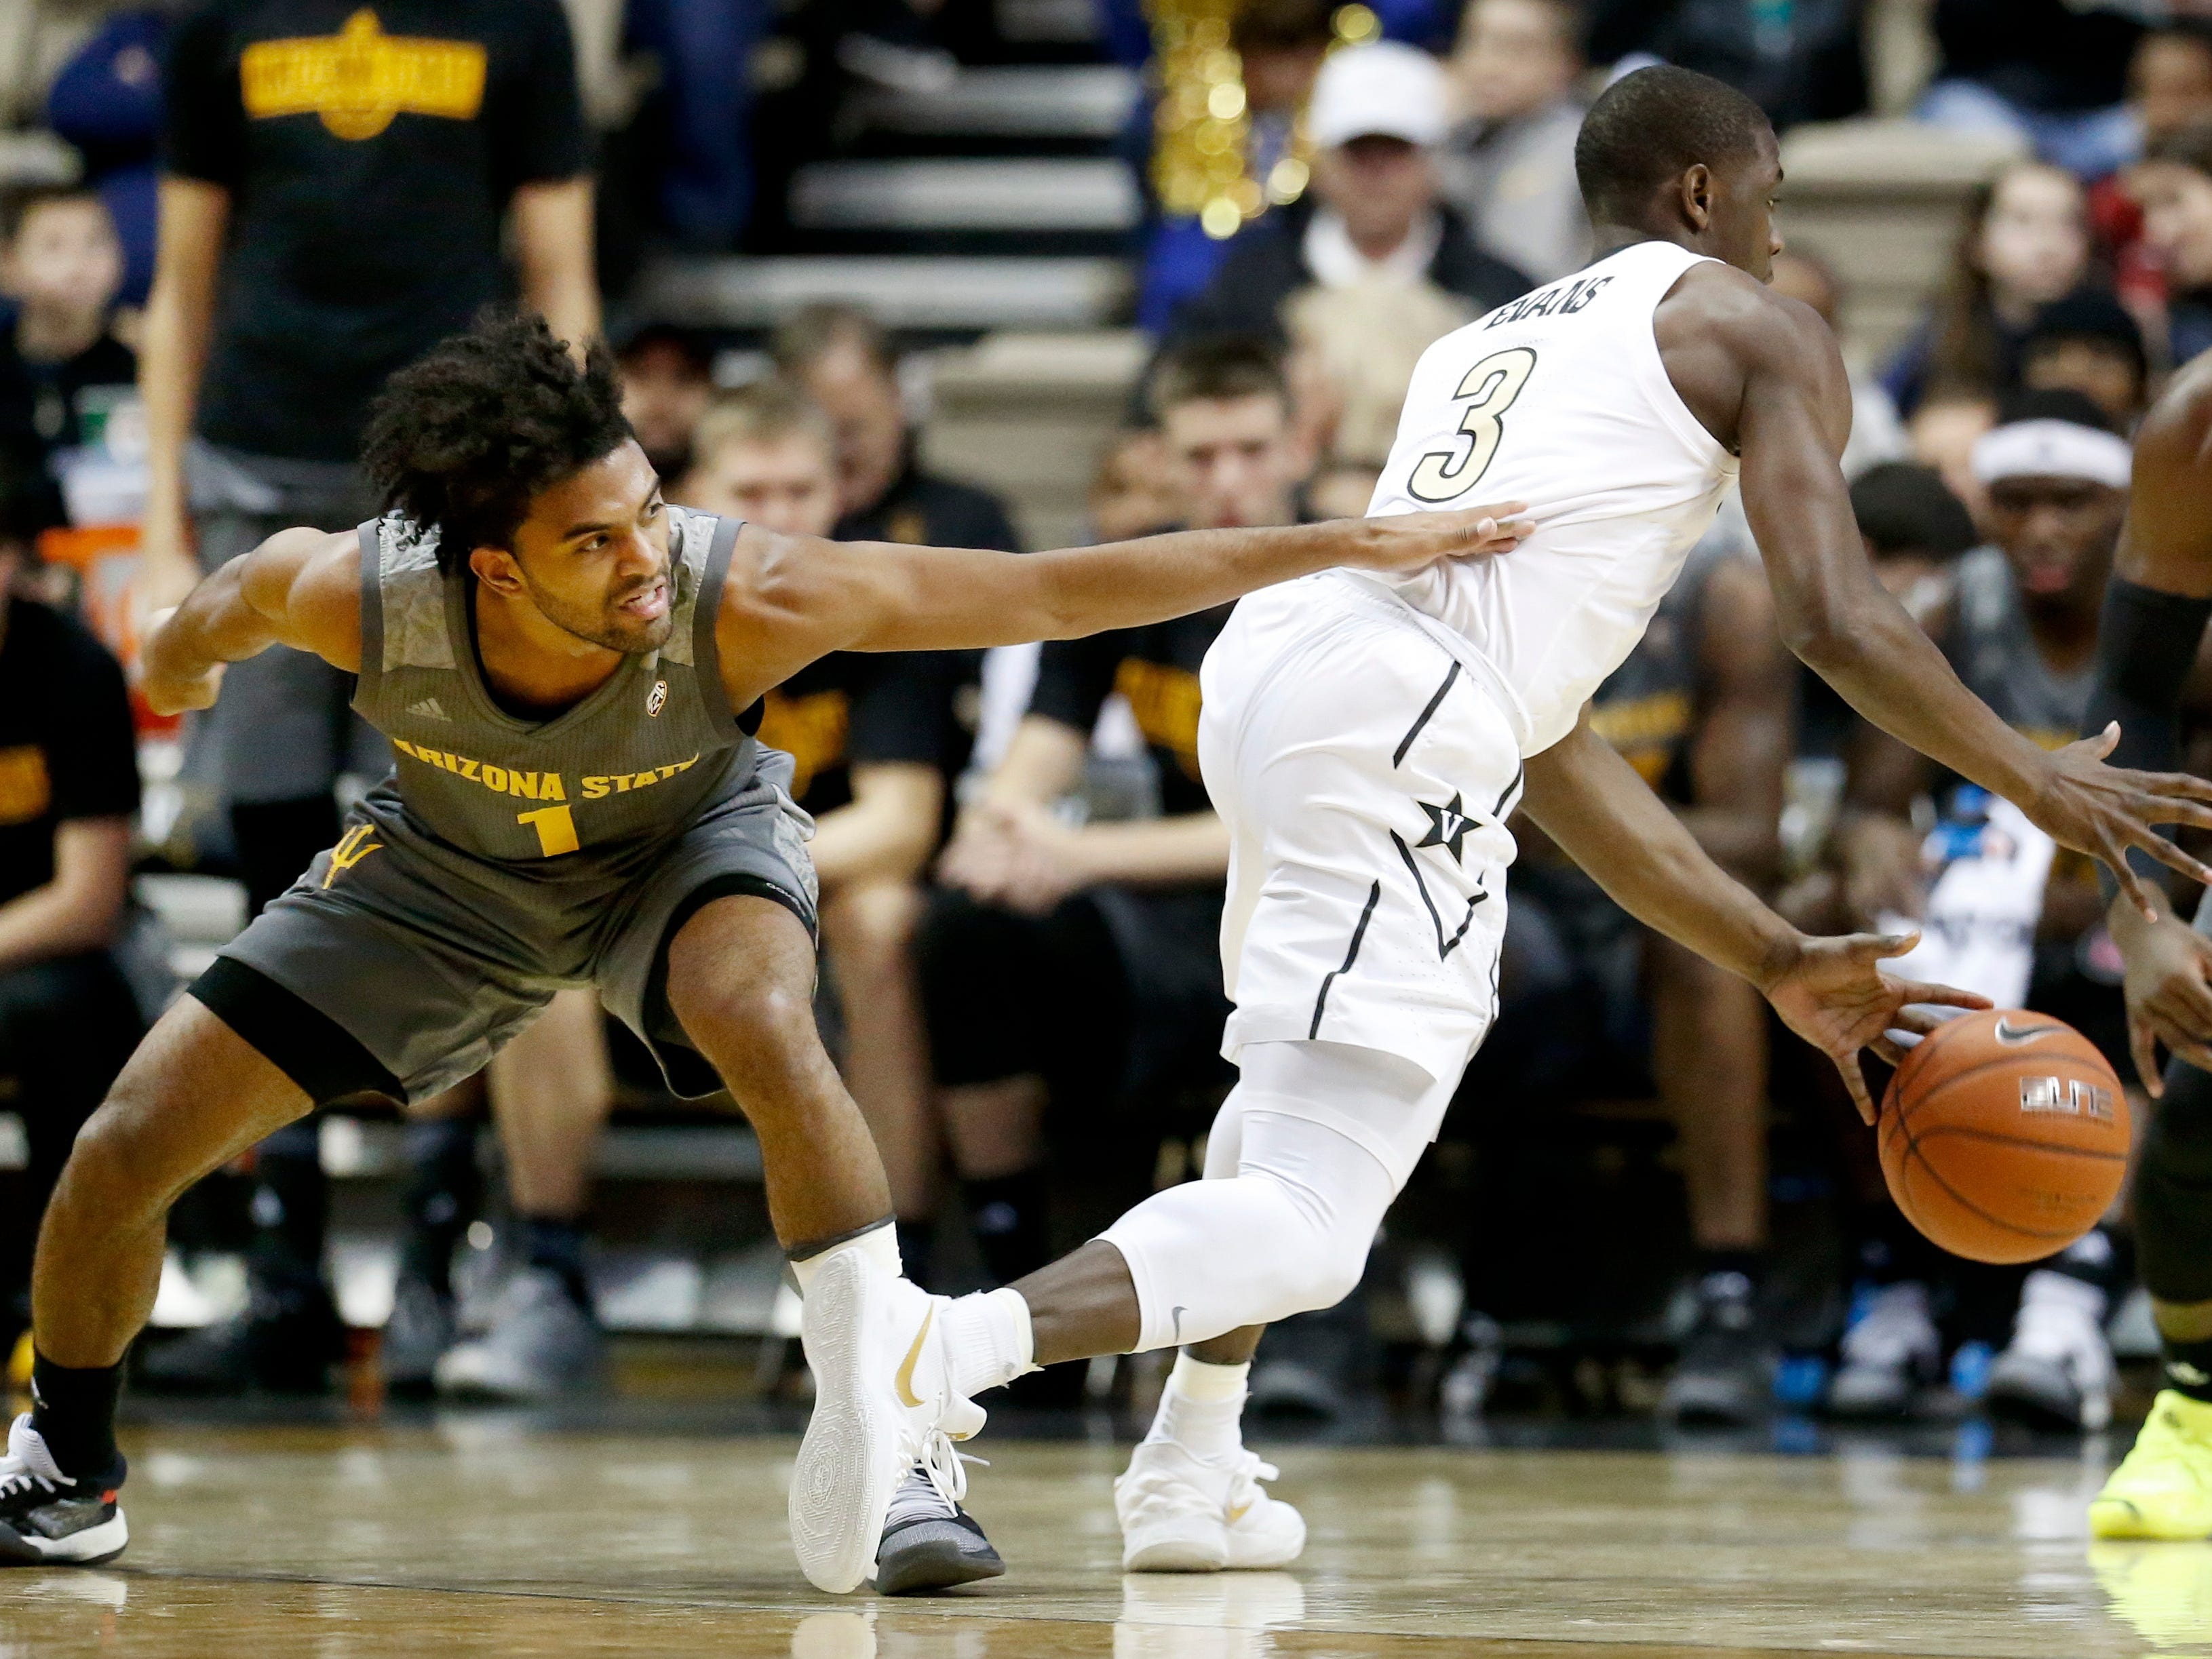 Arizona State guard Remy Martin (1) tries to stop Vanderbilt guard Maxwell Evans (3) in the first half of an NCAA college basketball game Monday, Dec. 17, 2018, in Nashville, Tenn. (AP Photo/Mark Humphrey)